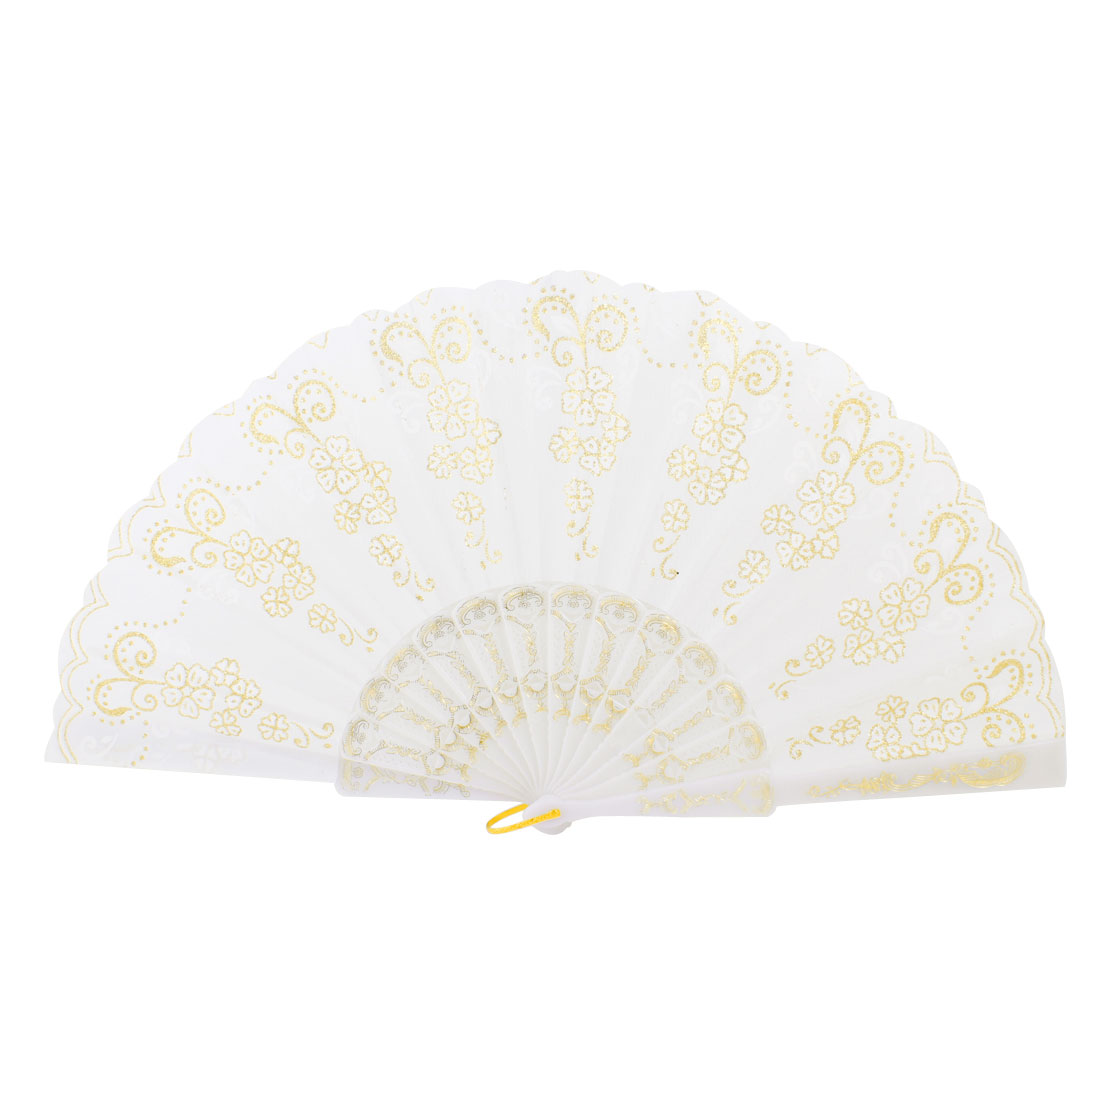 Plastic Frame Gold Tone Glittery Powder Detail Floral Printed Dancing Folding Hand Fan White